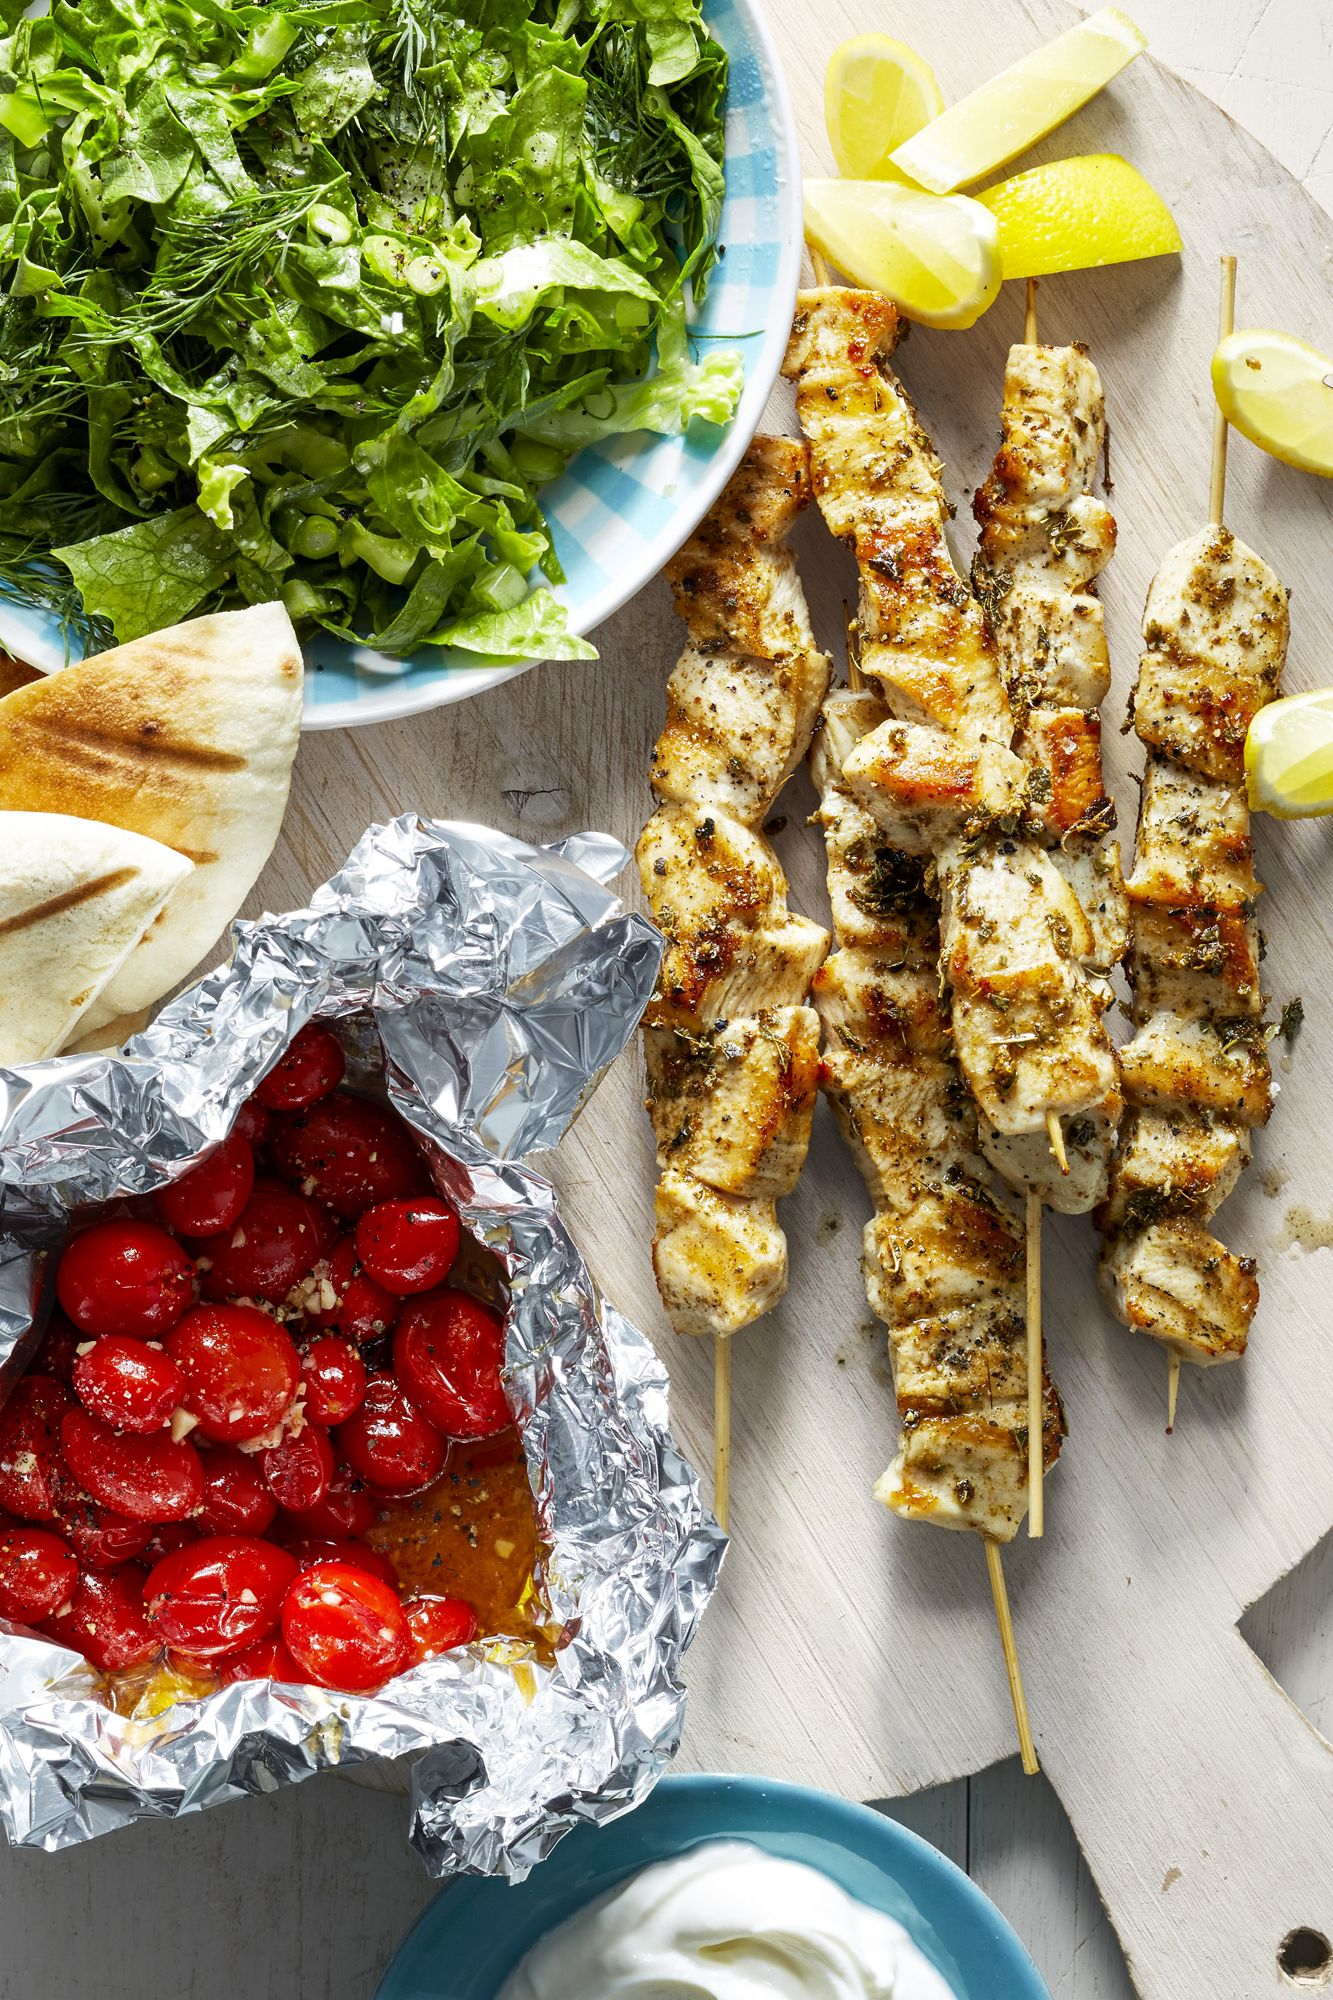 Best Chicken Souvlaki Skewers Recipe How To Make Chicken Souvlaki Skewers